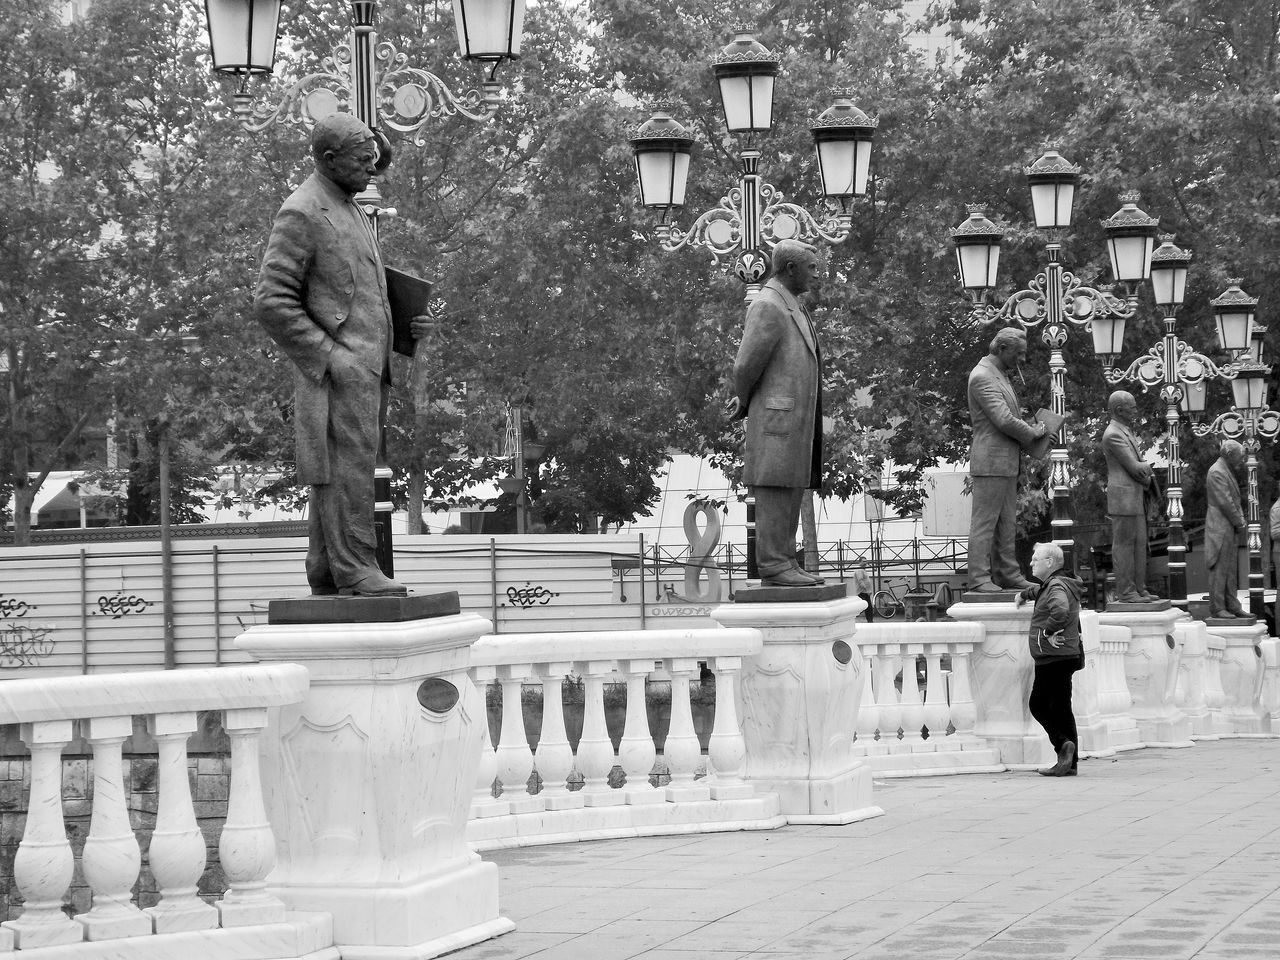 Blackandwhite One Person People People Photography People Watching Statue Wondering